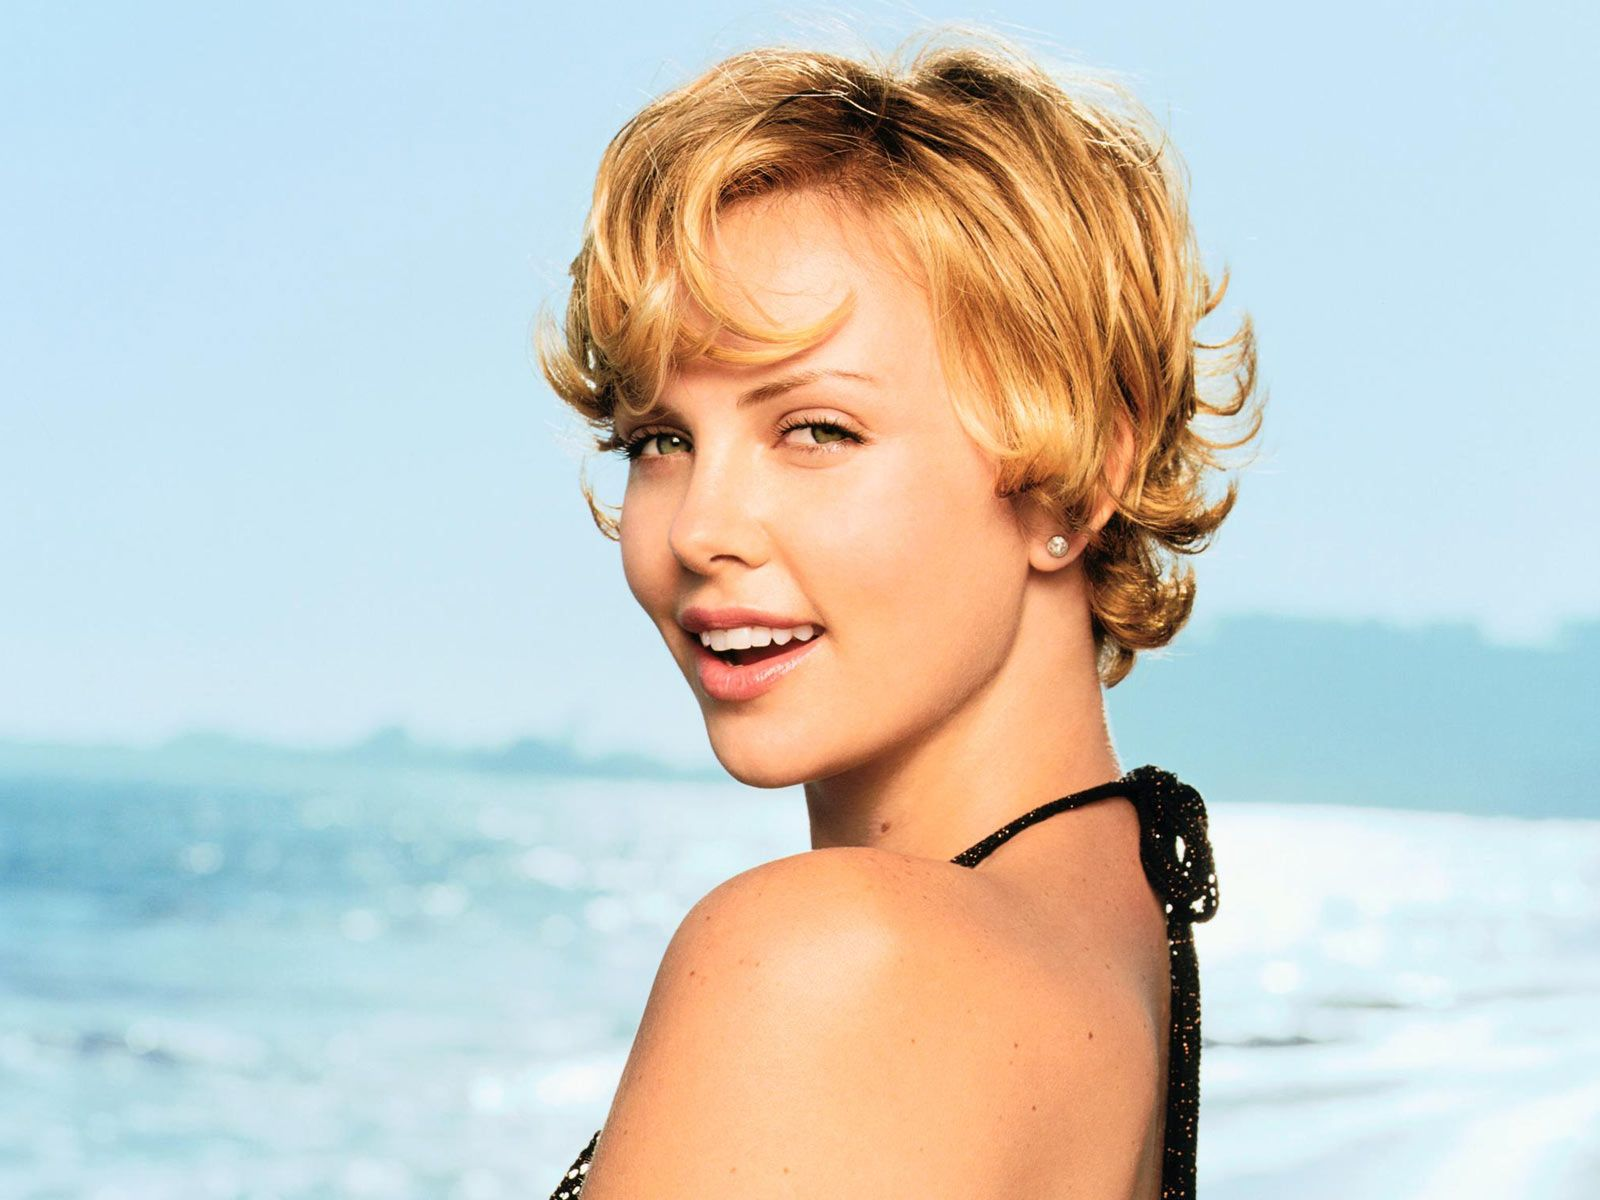 Шарлиз Терон (Charlize Theron) (26 HQ фото)